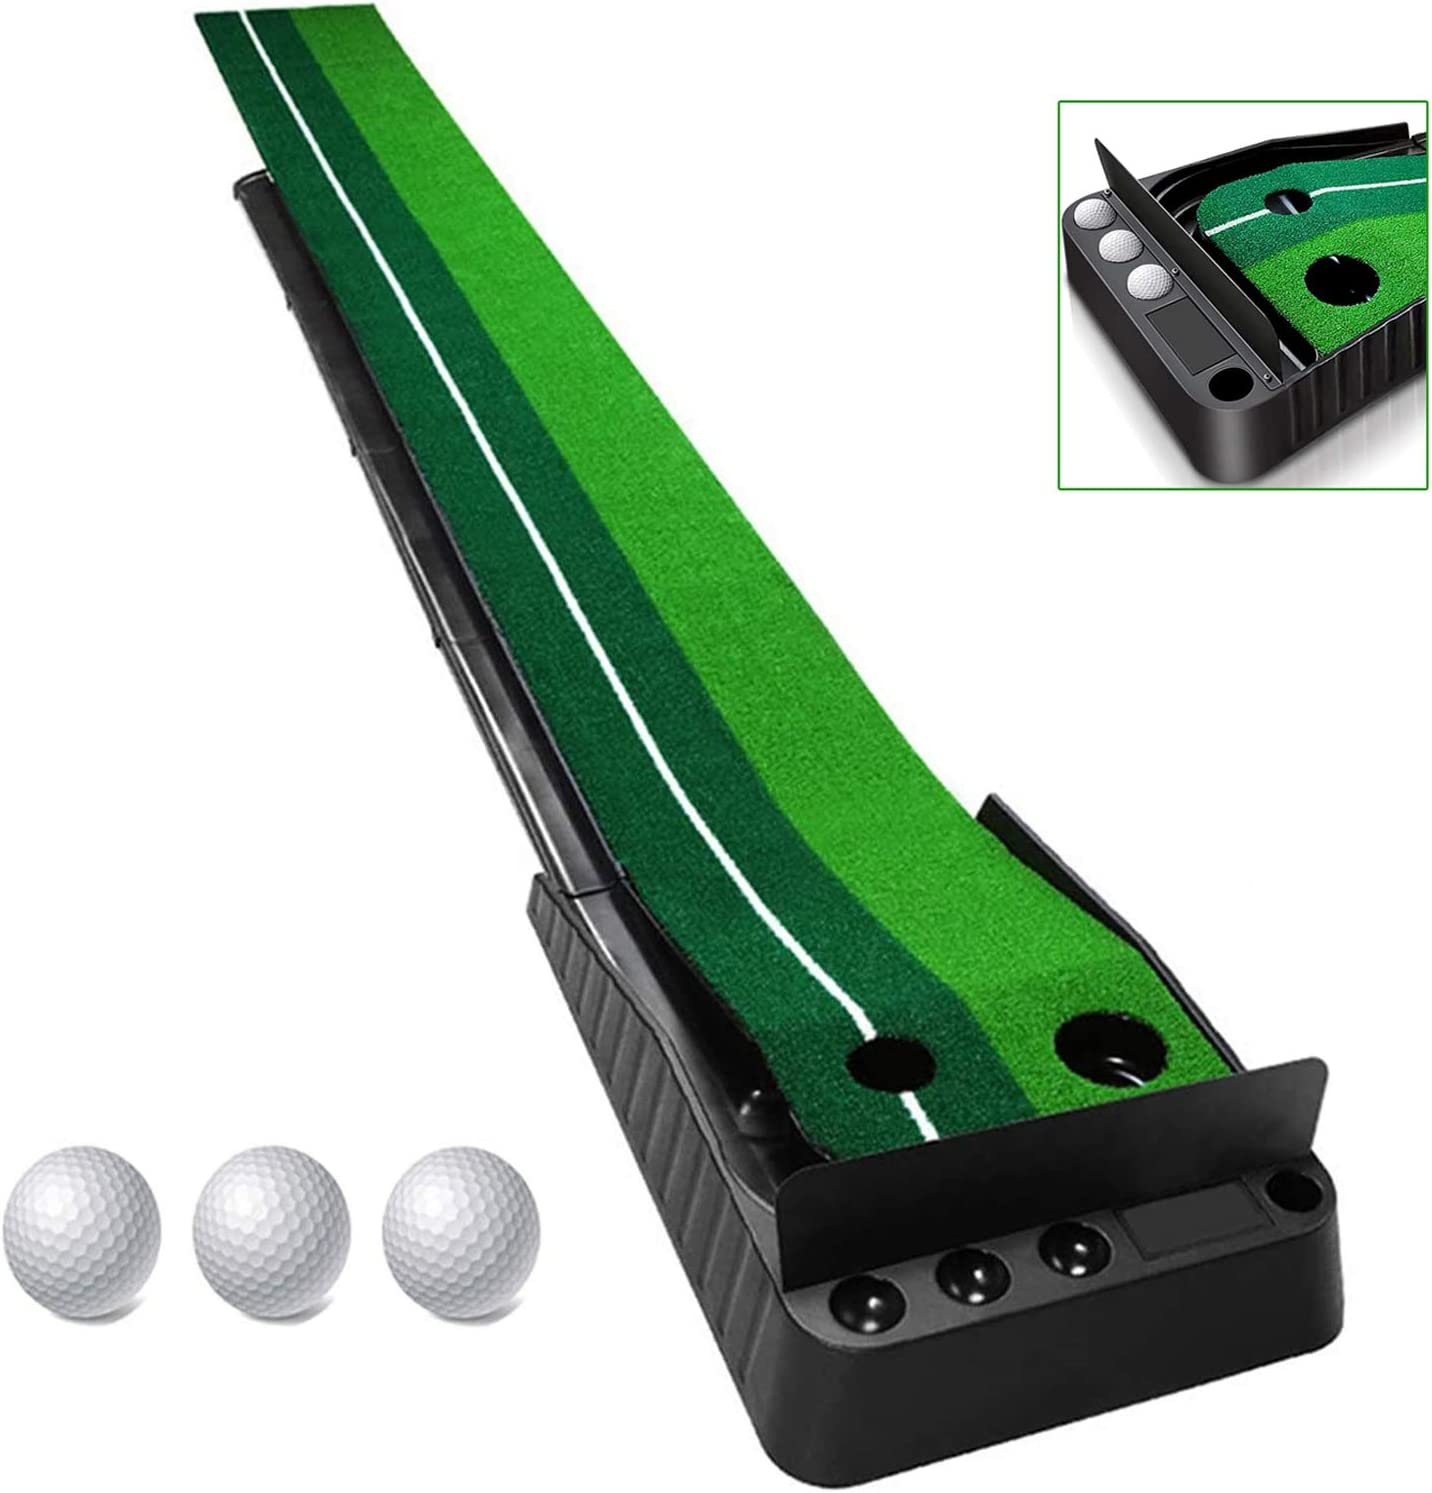 MIZIKUSON Indoor Golf Putting Green, Portable Travel Golf Balls Mat with Baffle Plate Auto Ball Return Function Golf Practice Putting Mat Training Aid Equipment for Home Office Use